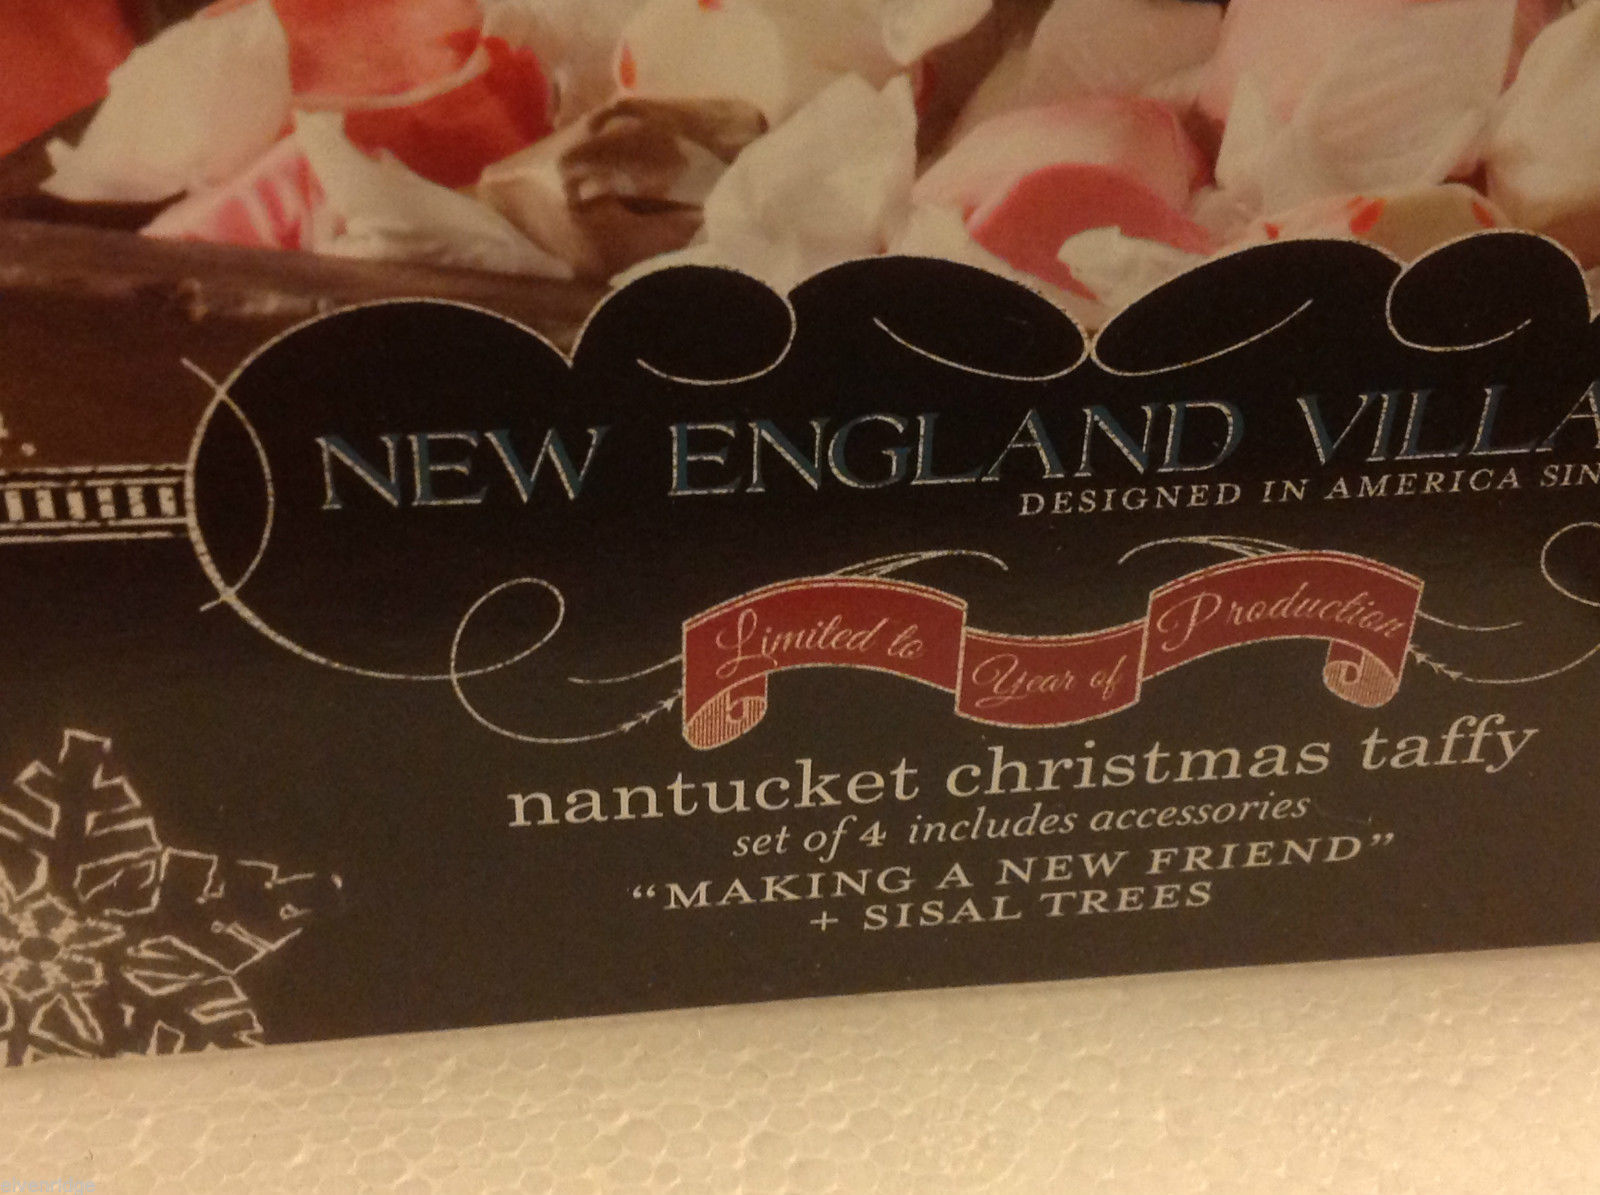 Department 56 New England Village Nantucket Christmas taffy Making a New Friend